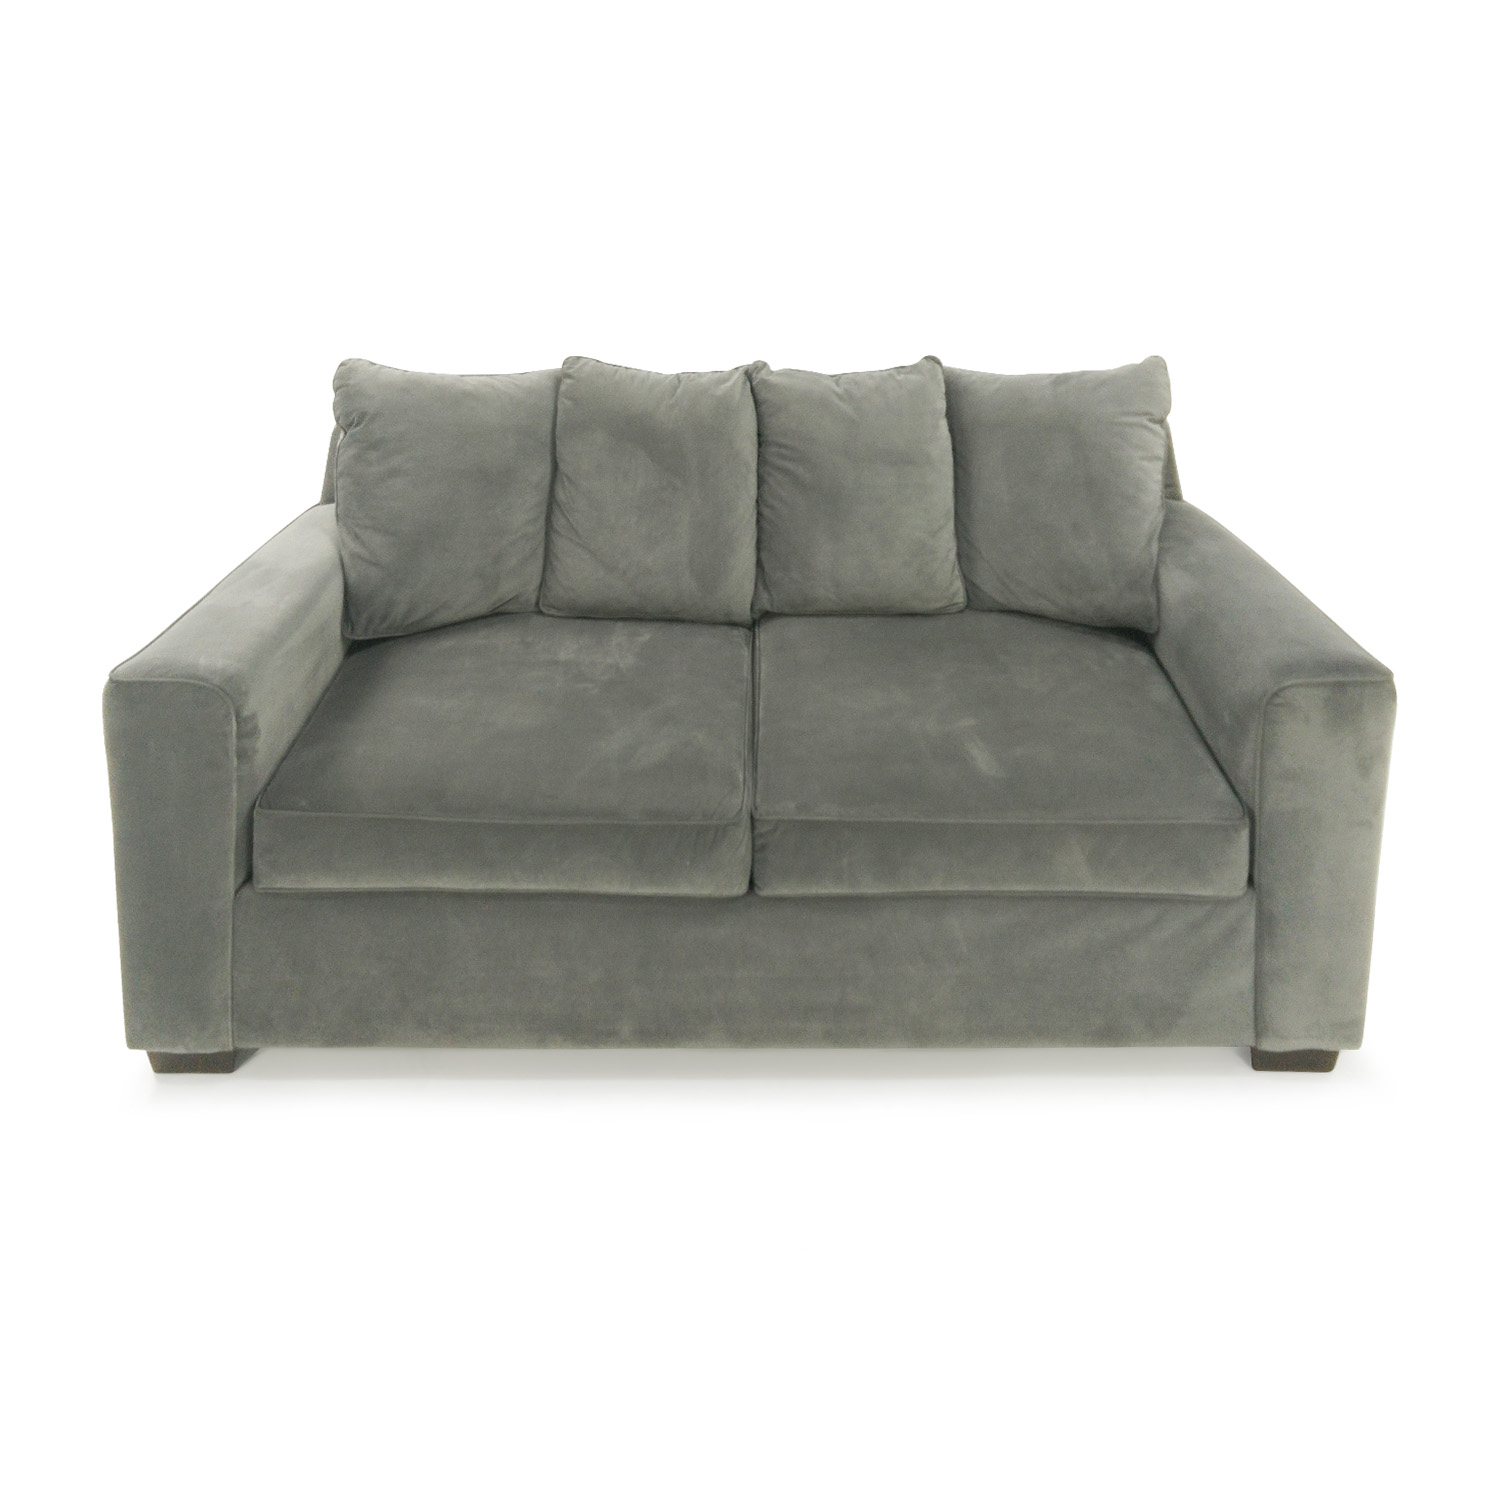 46% OFF Room and Board Room & Board Ian Sofa Sofas